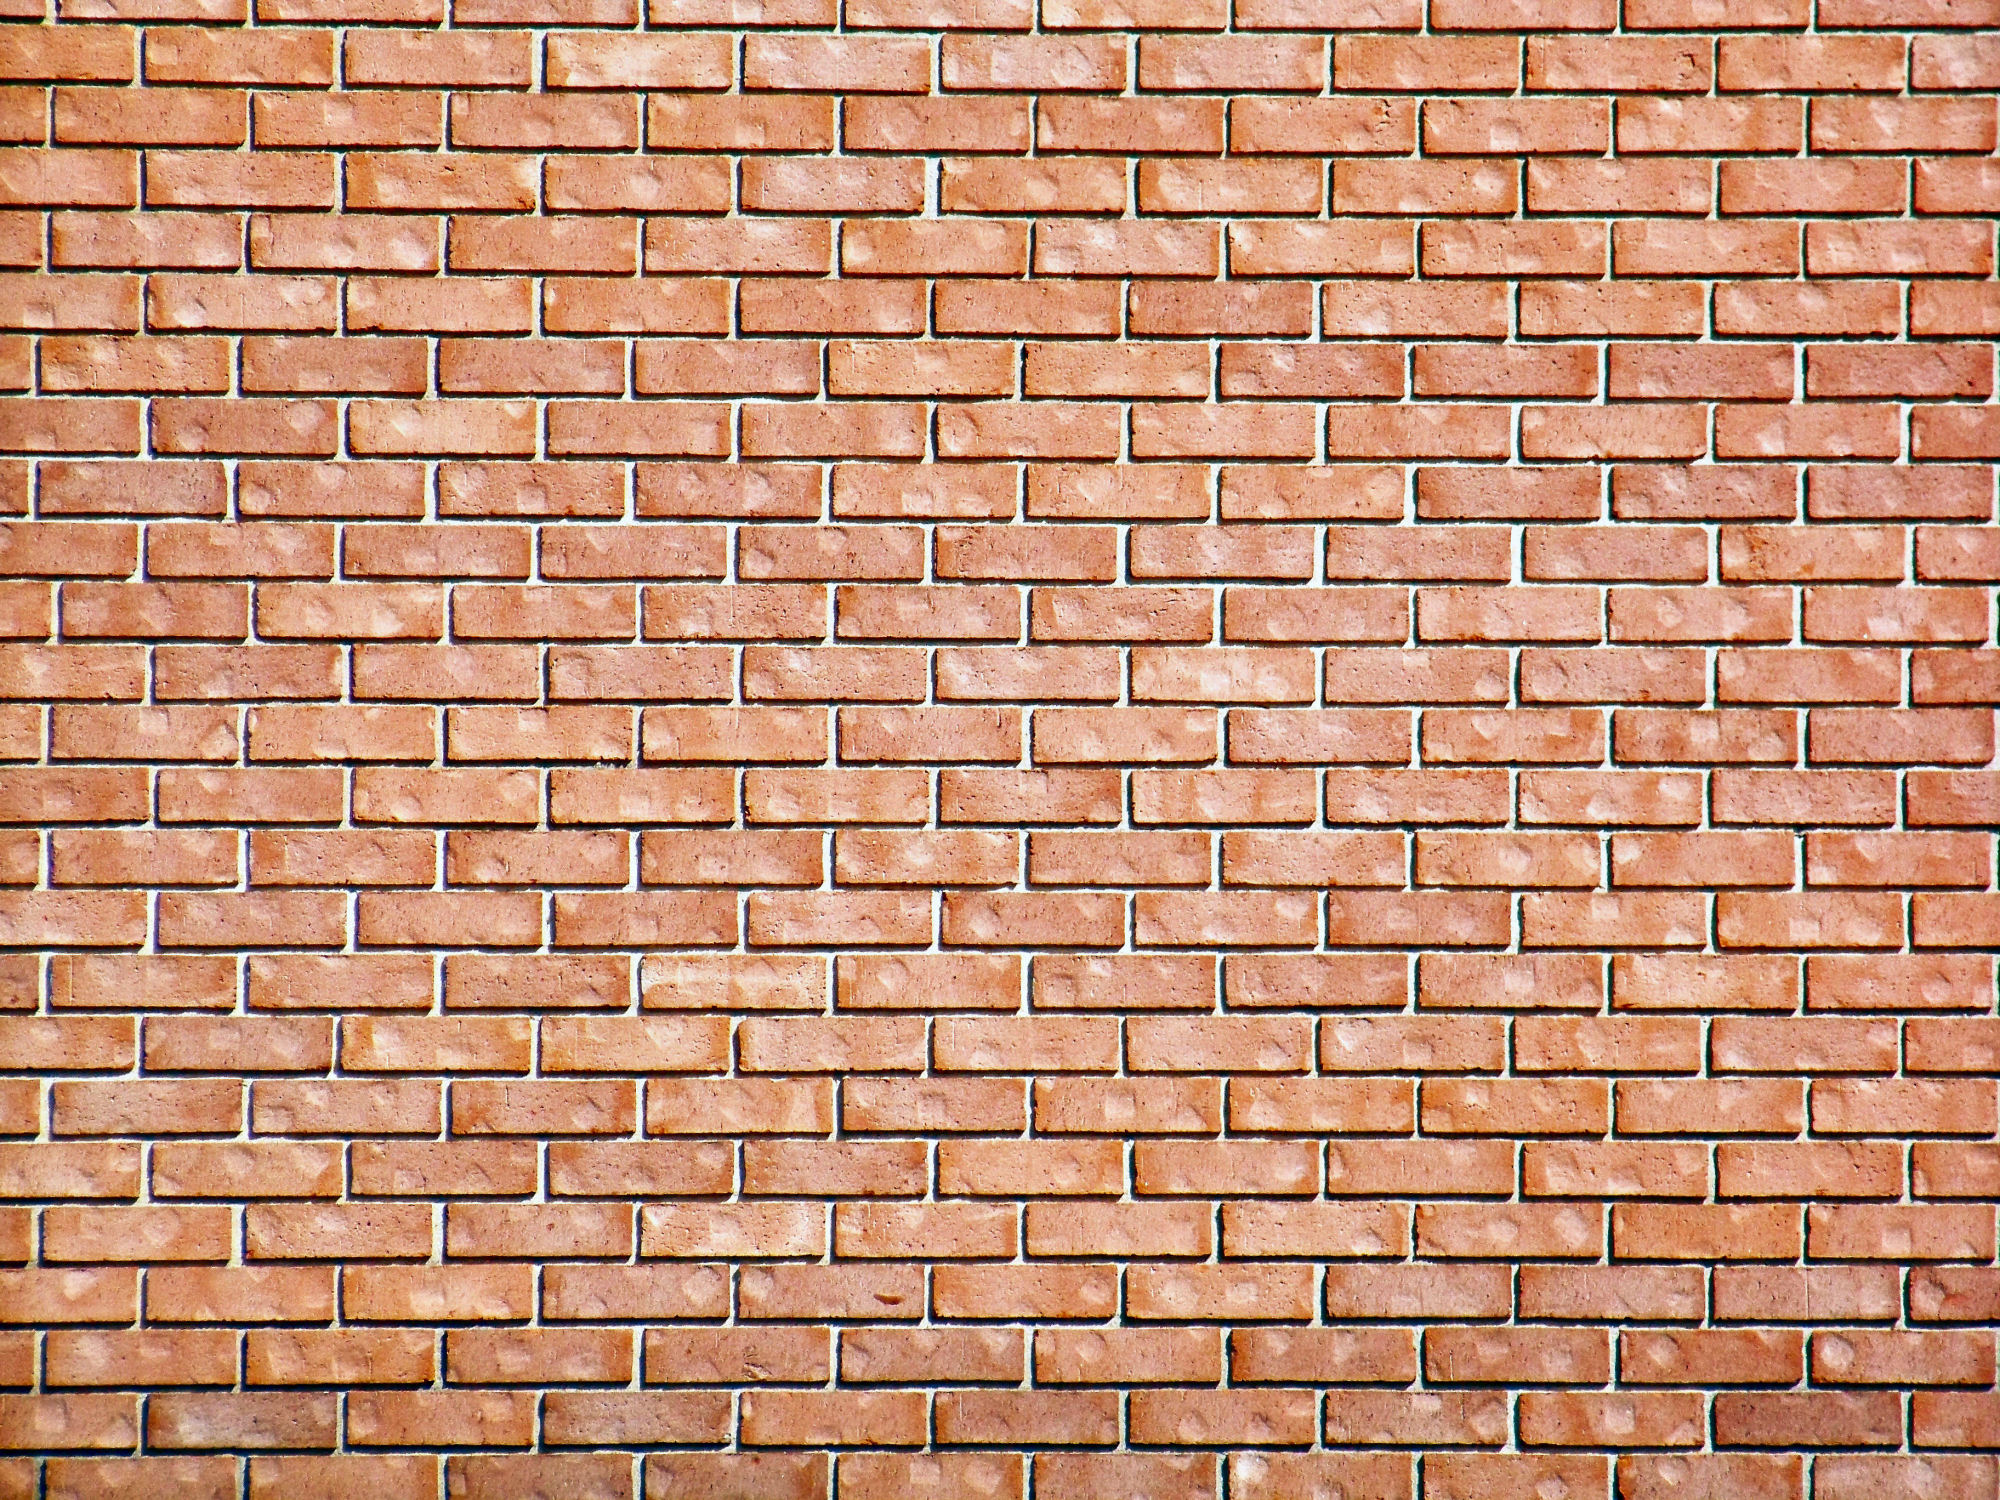 wall, texture, bricks, brick wall texture, background, download